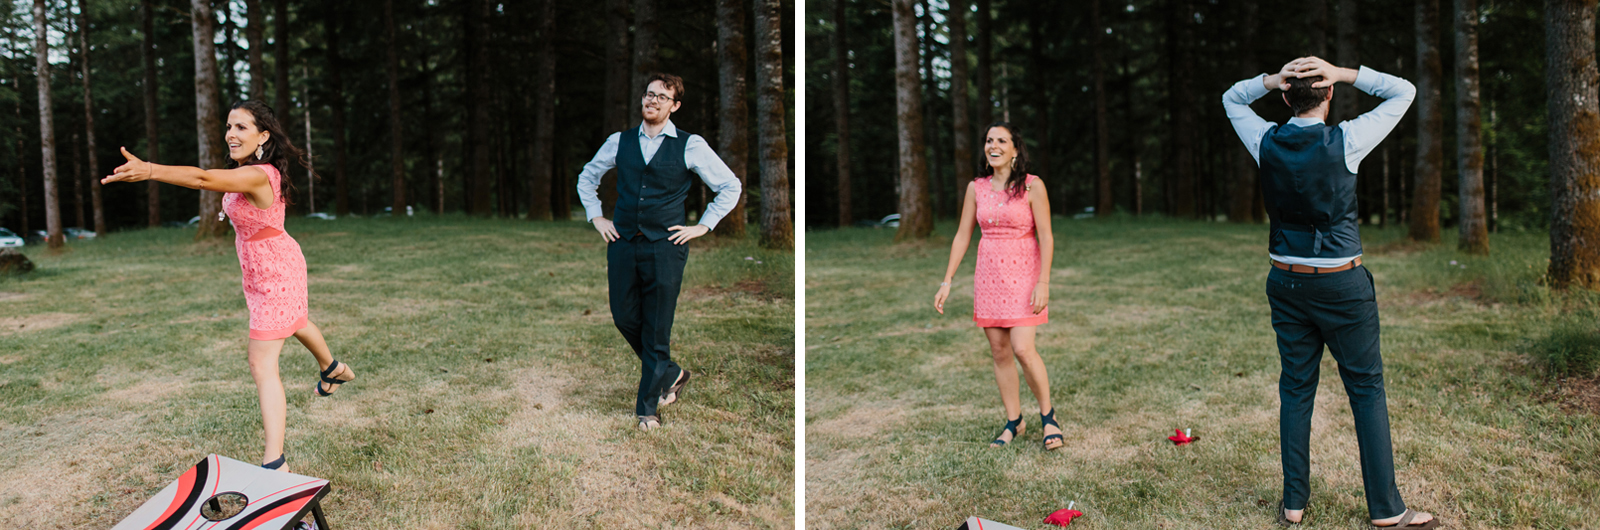 Silver Falls State Park Wedding by Anna Jaye Photography 116